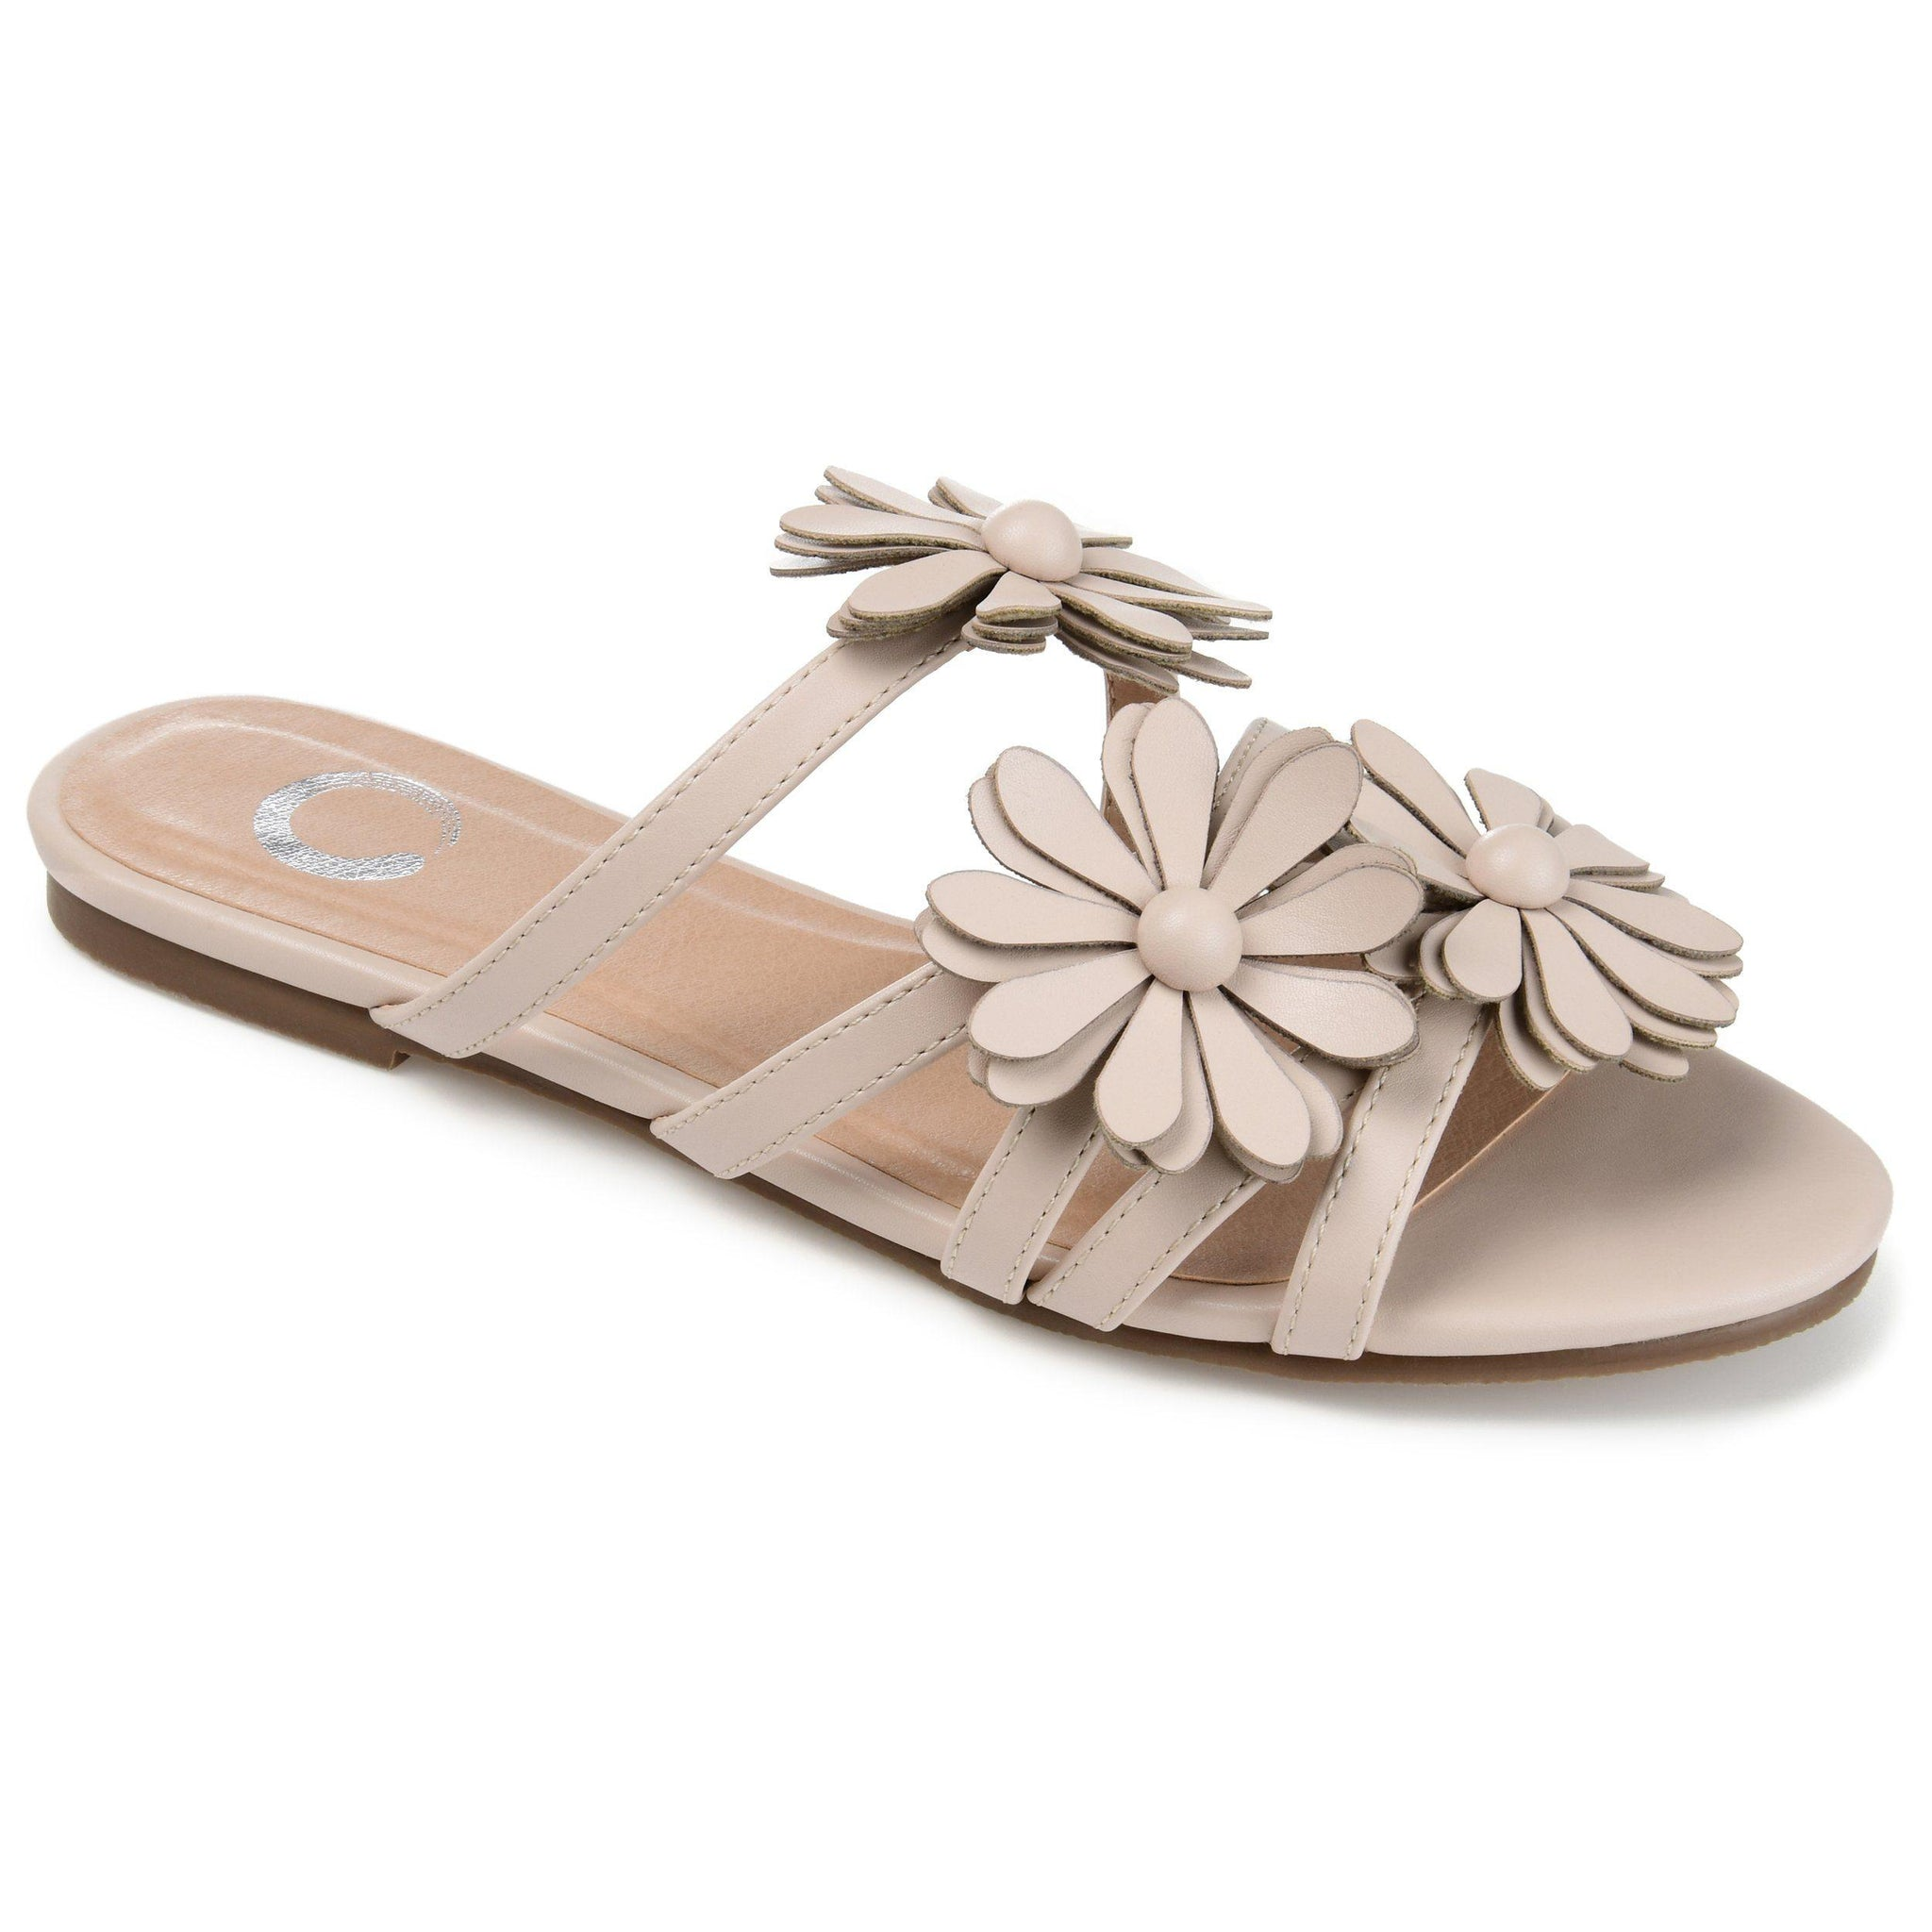 DOLLIAH SHOES Journee Collection Nude 11